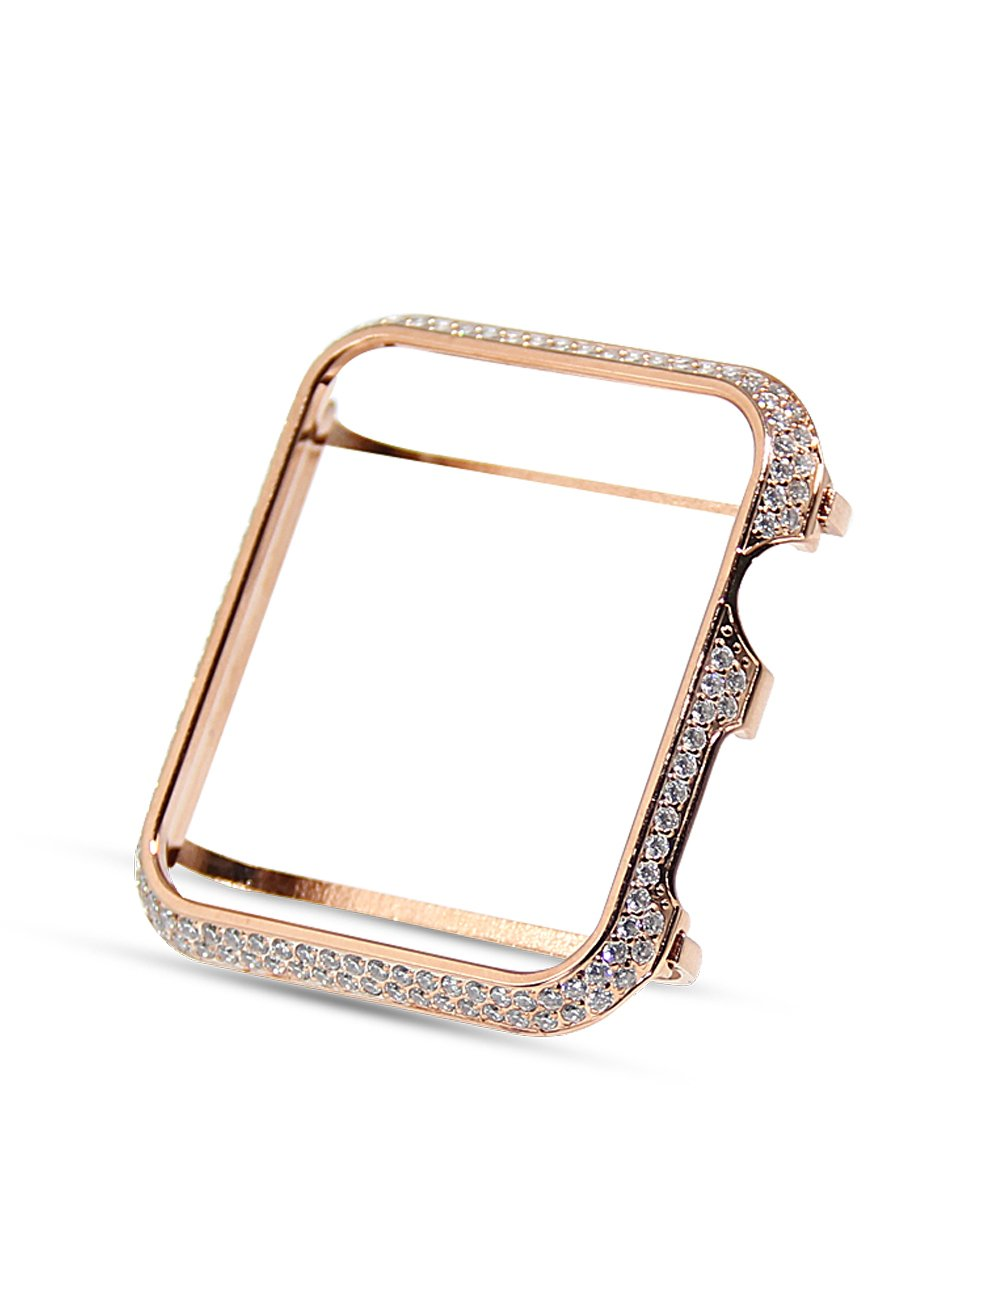 Huanxi 38mm Handwork Encrusted Rhinestone Diamond case Bezel Compatible Apple Watch Series 3 2 1,Rosegold